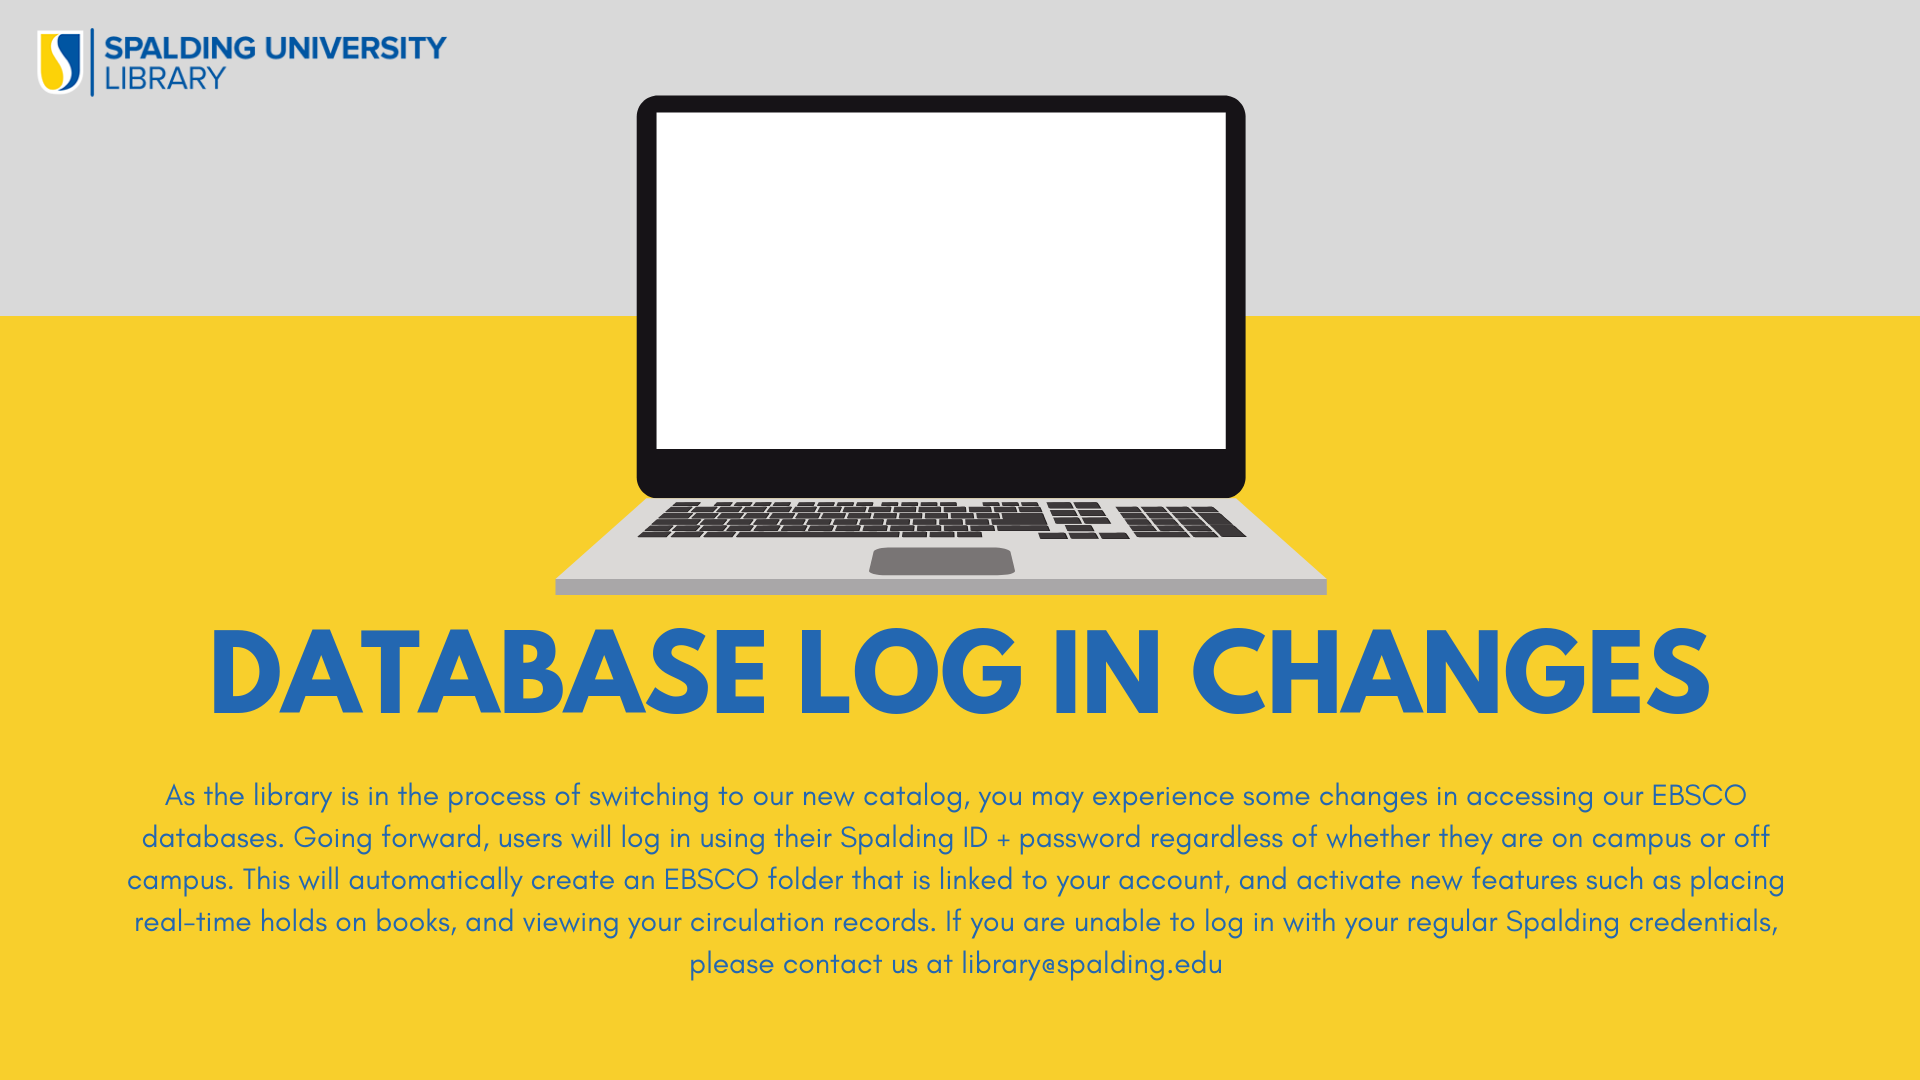 Database Log In Changes - As the library is in the process of switching to our new catalog, you may experience some changes in accessing our EBSCO databases. Going forward, users will log in using their Spalding ID + password regardless of whether they are on campus or off campus. This will automatically create an EBSCO folder that is linked to your account, and activate new features such as placing real-time holds on books, and viewing your circulation records. If you are unable to log in with your regular Spalding credentials, please contact us at library@spalding.edu